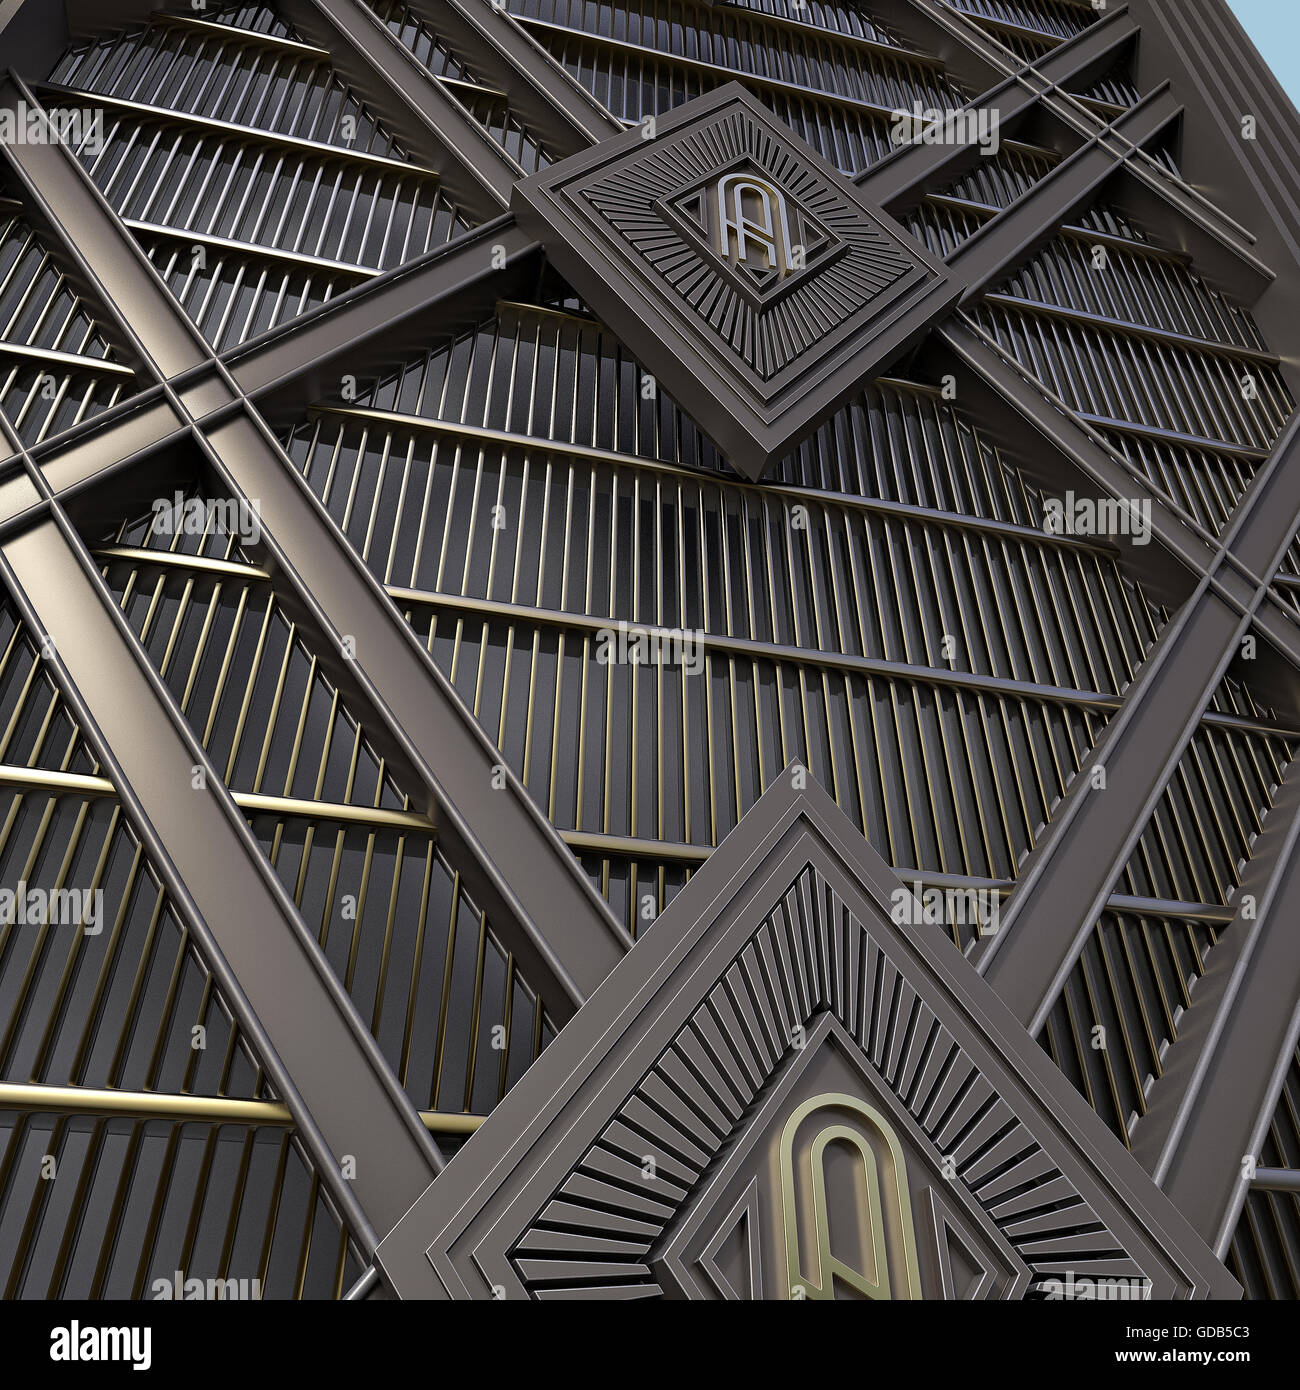 Wall Art Deco Style Made Of Steel And Gold Background 3d Render